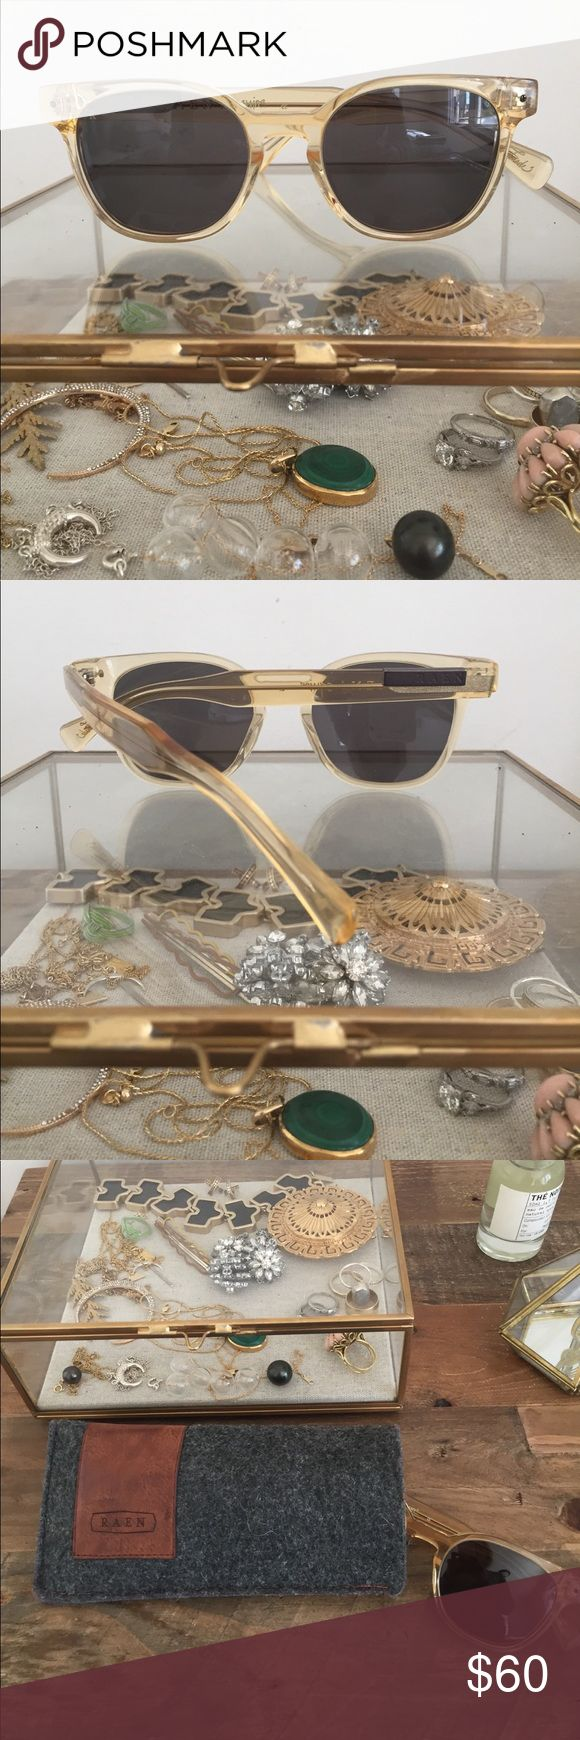 Raen Sunglasses Clear gold acetate frames made in L.A., super dark lenses for excellent sun protection! These frames have a 30's flair, wear with a navy high waist bikini or your favorite polka dots! Excellent condition, comes with case. Raen Accessories Sunglasses